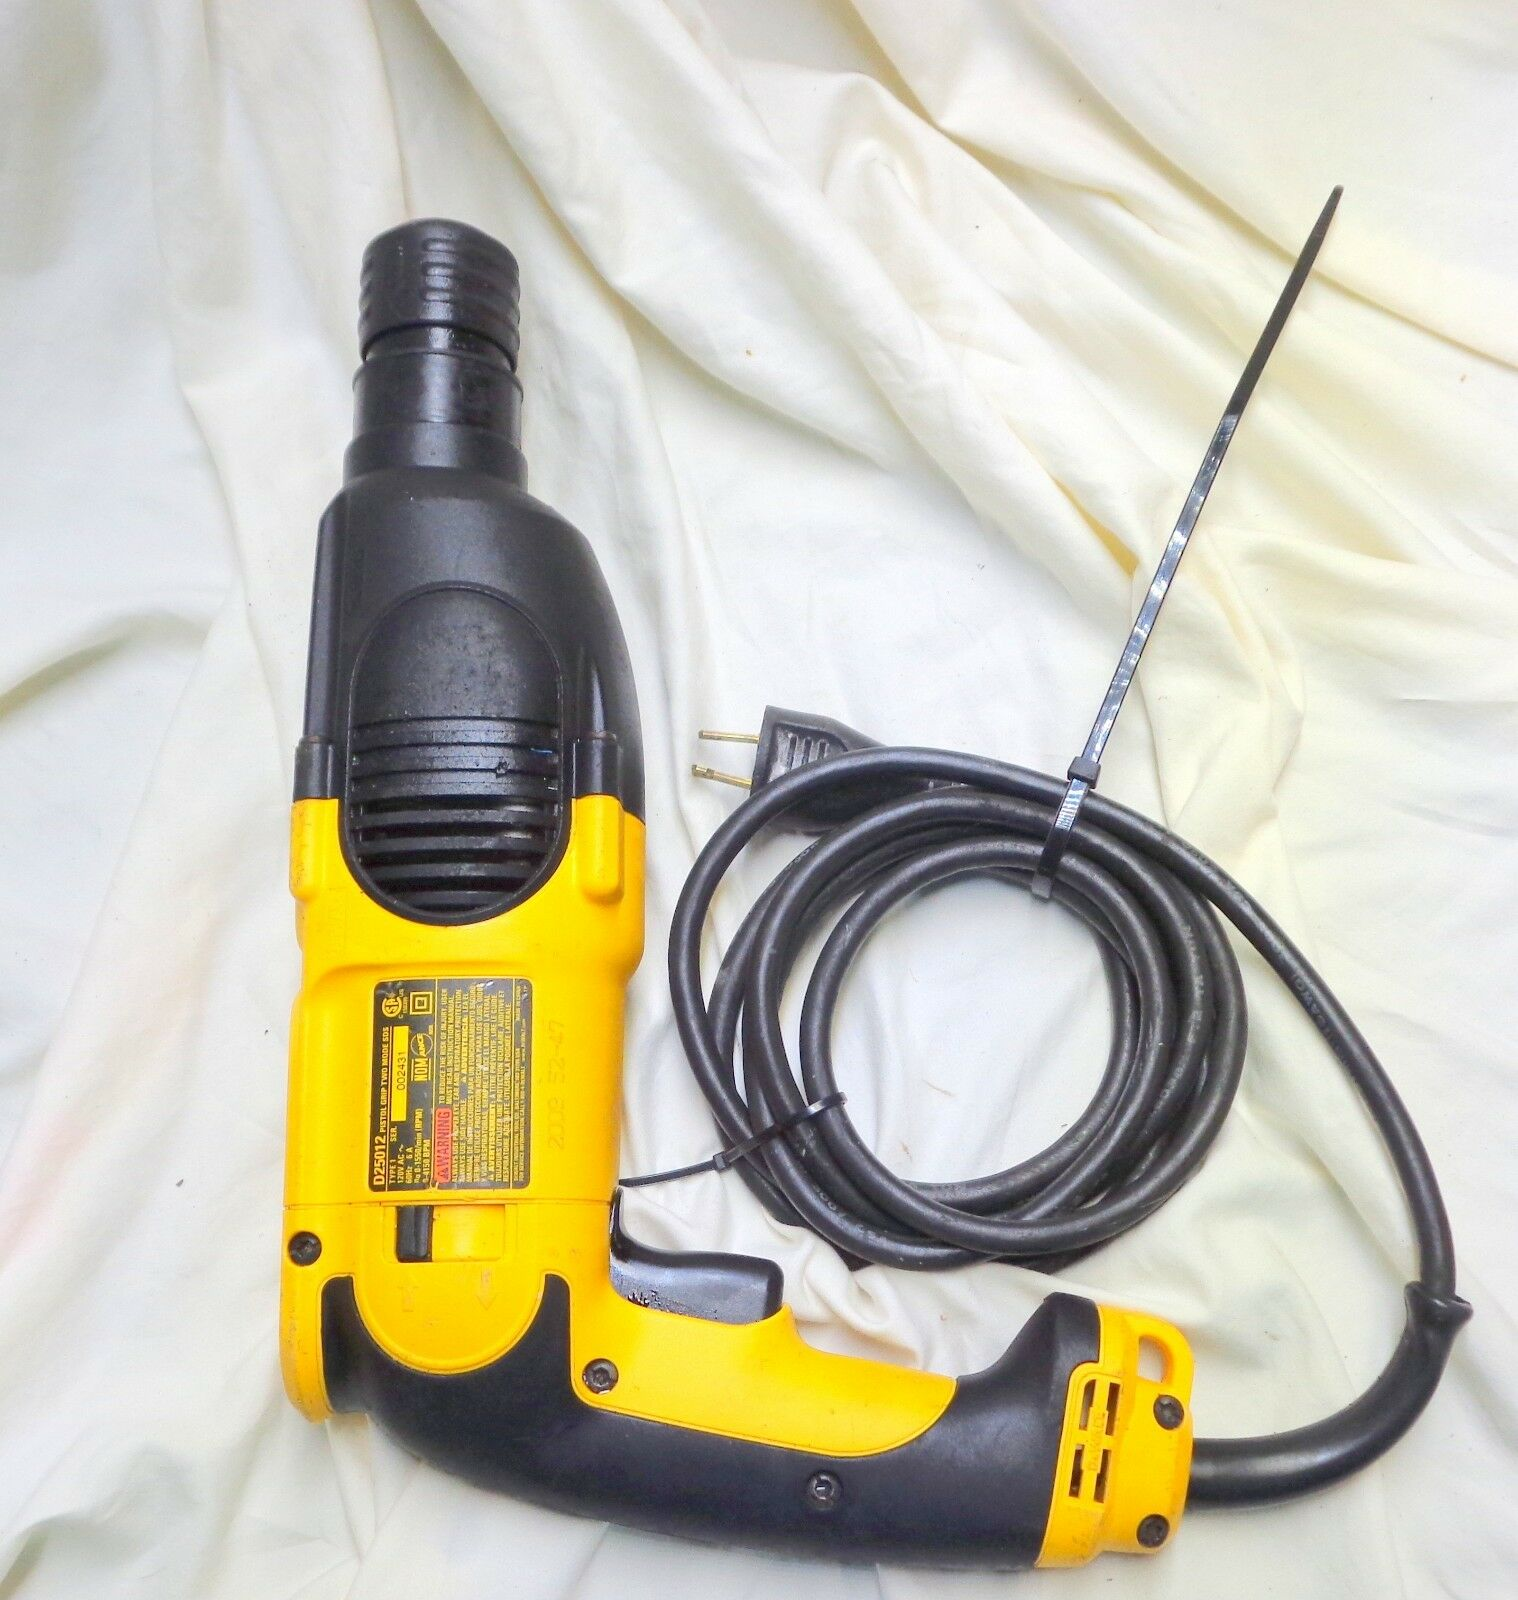 DeWALT D25012K PISTOL-GRIP 7 8 INCH SDS ROTARY HAMMER works great